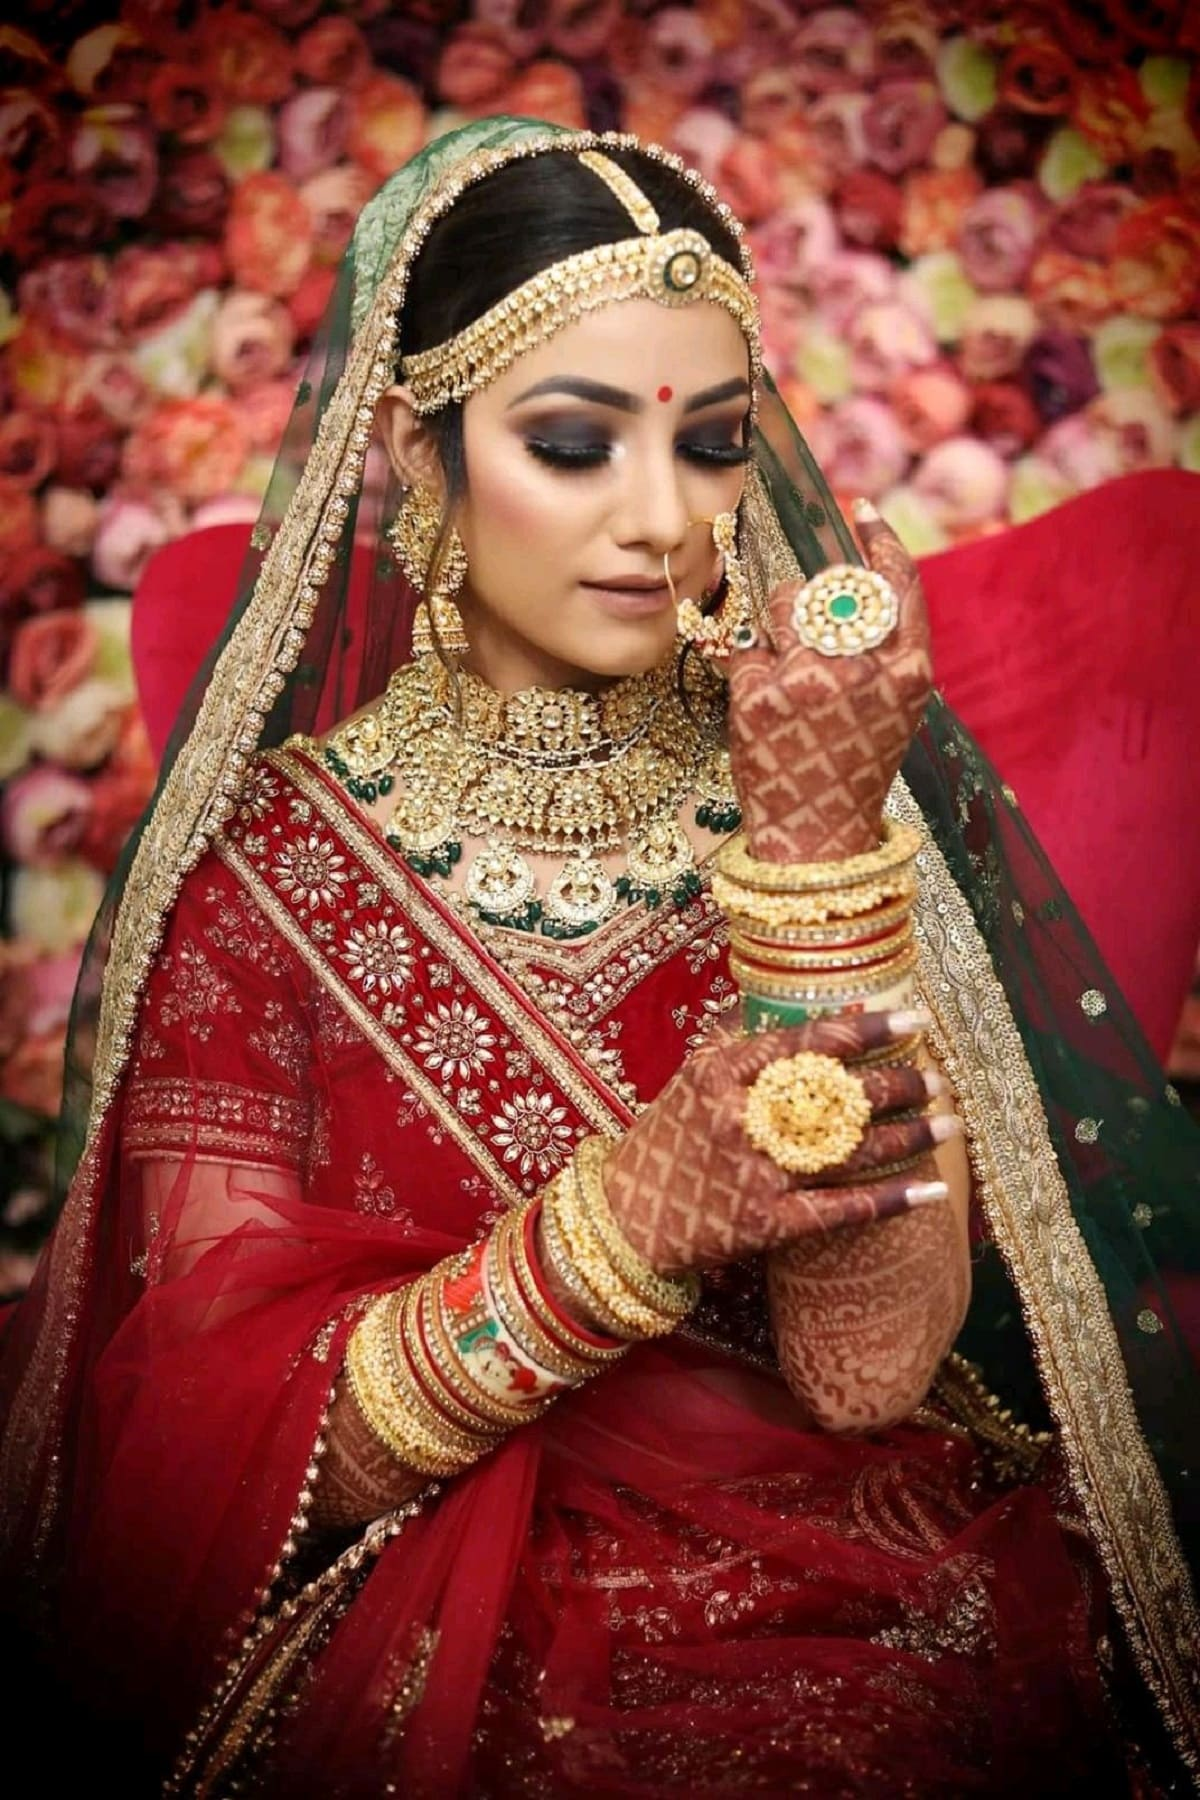 Incredible Bridal Kundan Jewellery For Indian Brides To Ace Their Regal Wedding Look